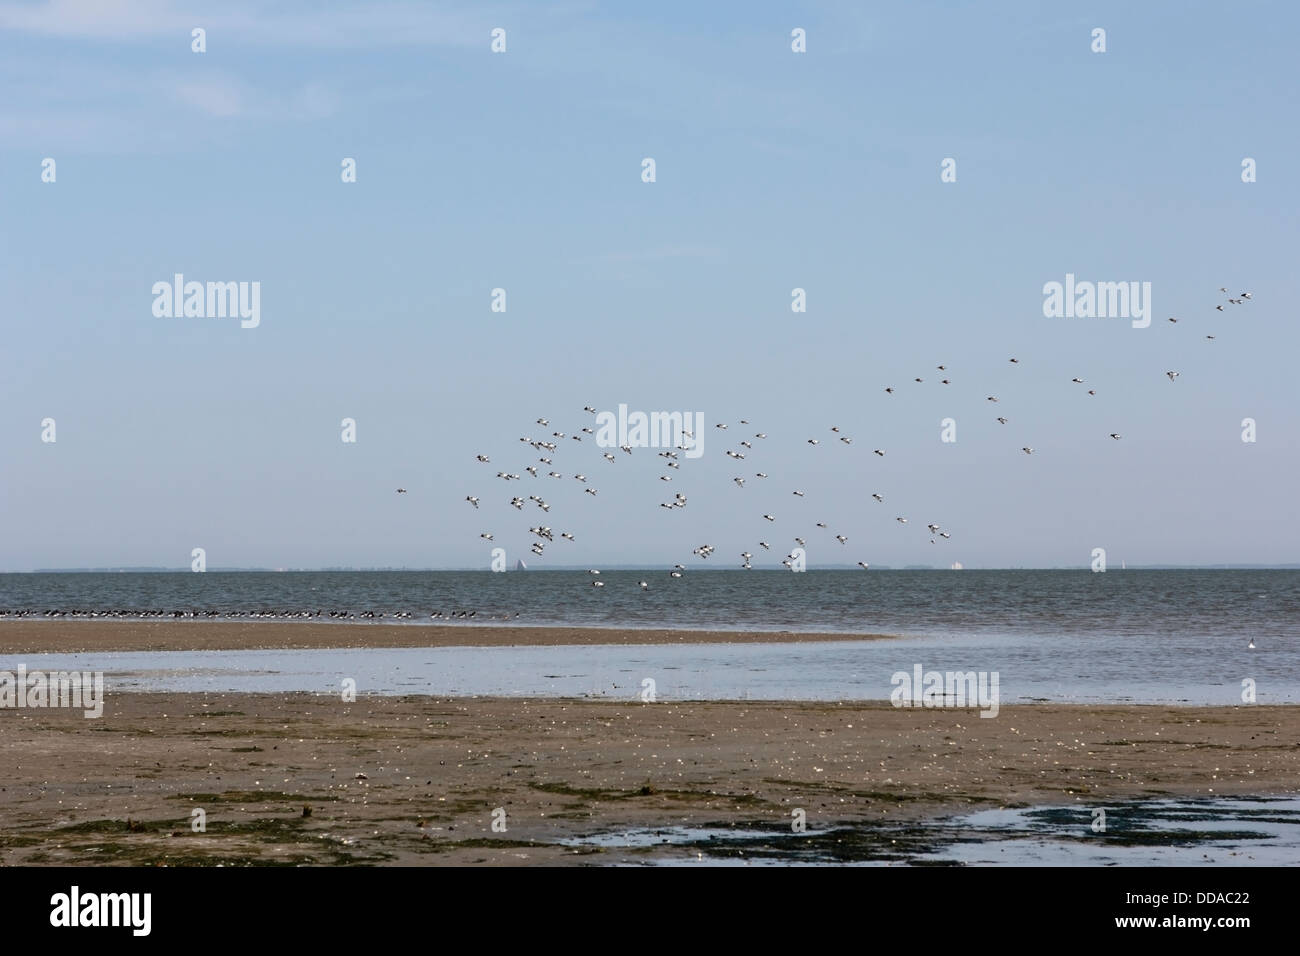 Salt marsh with oystercatchers on the Wadden island Griend, Netherlands - Stock Image